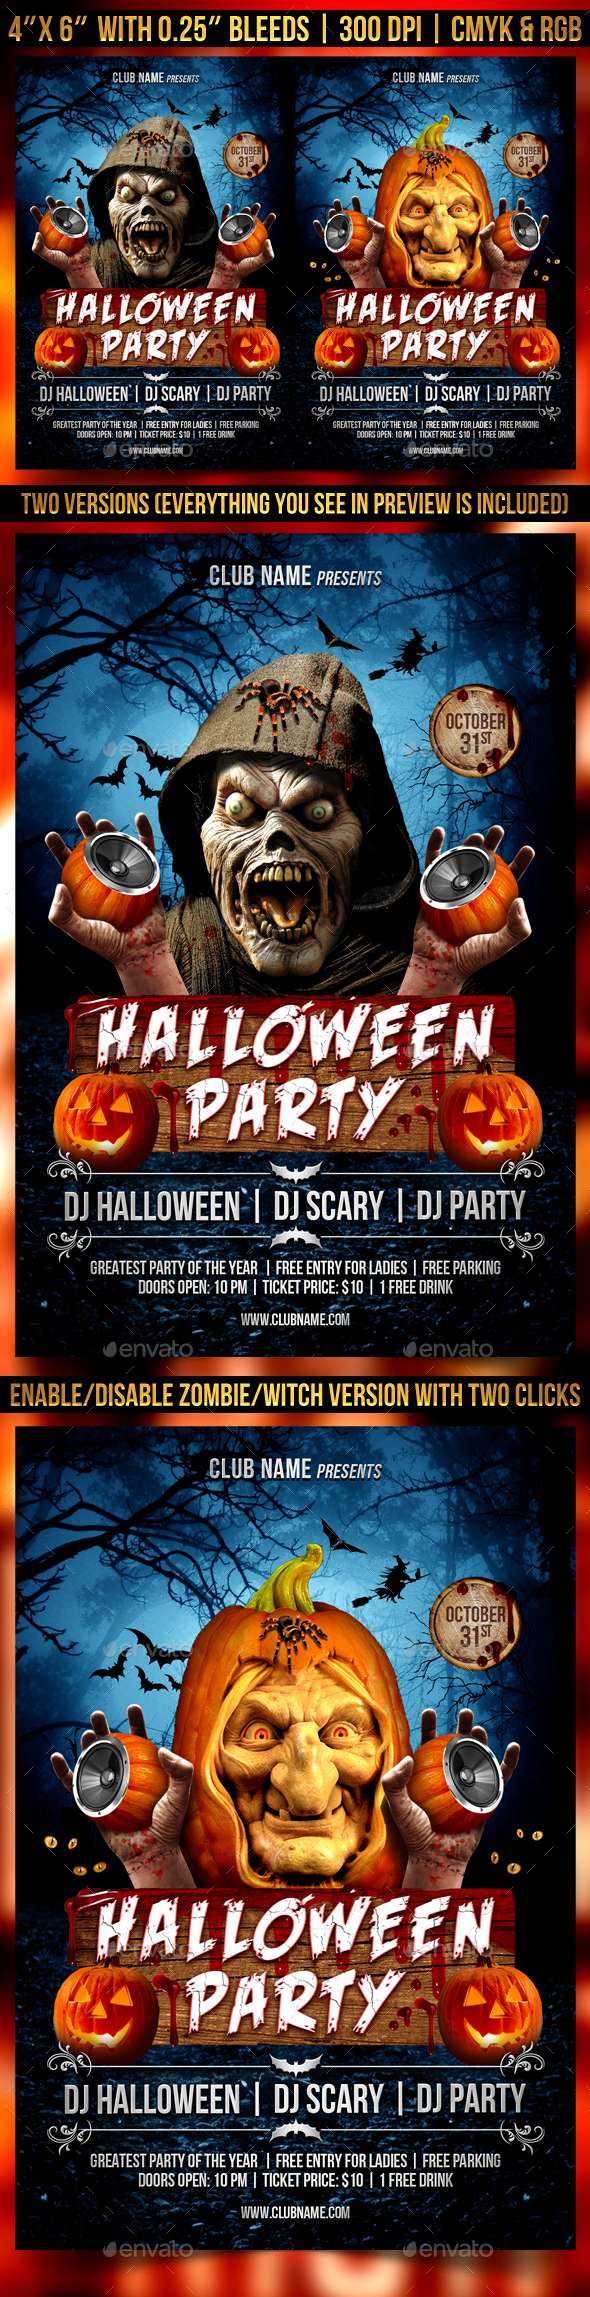 Halloween Party Flyer Template By Gugulanul Graphicriver